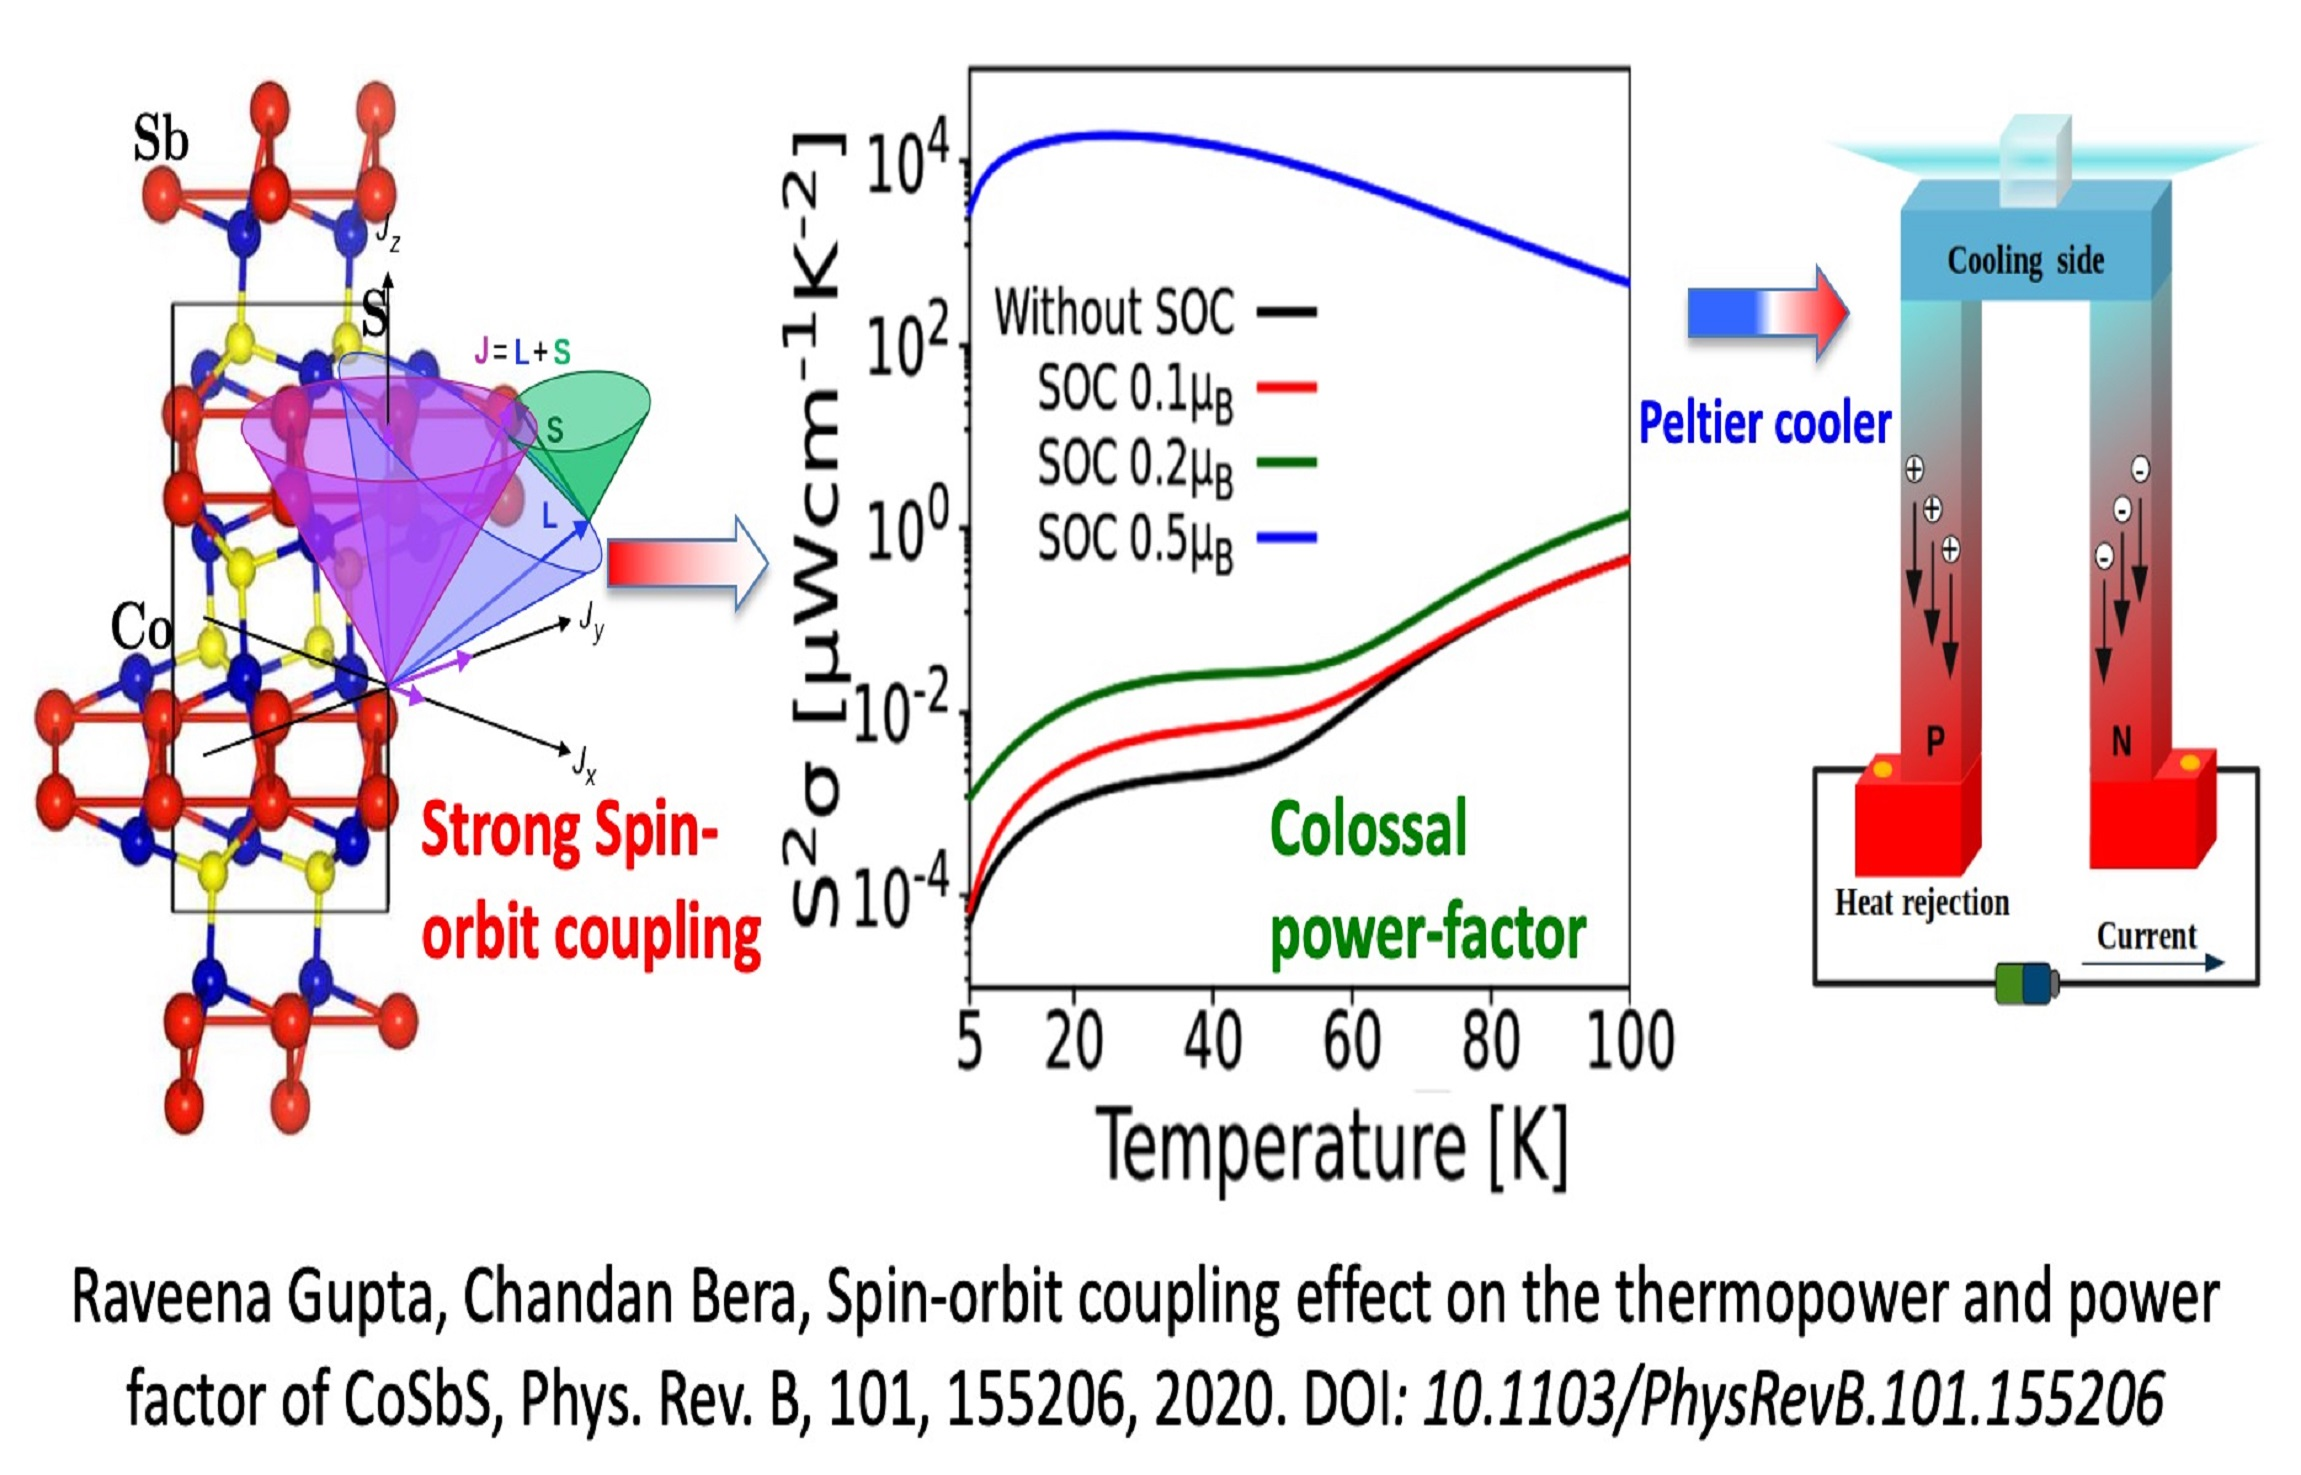 Thermoelectric & spinorbit coupling